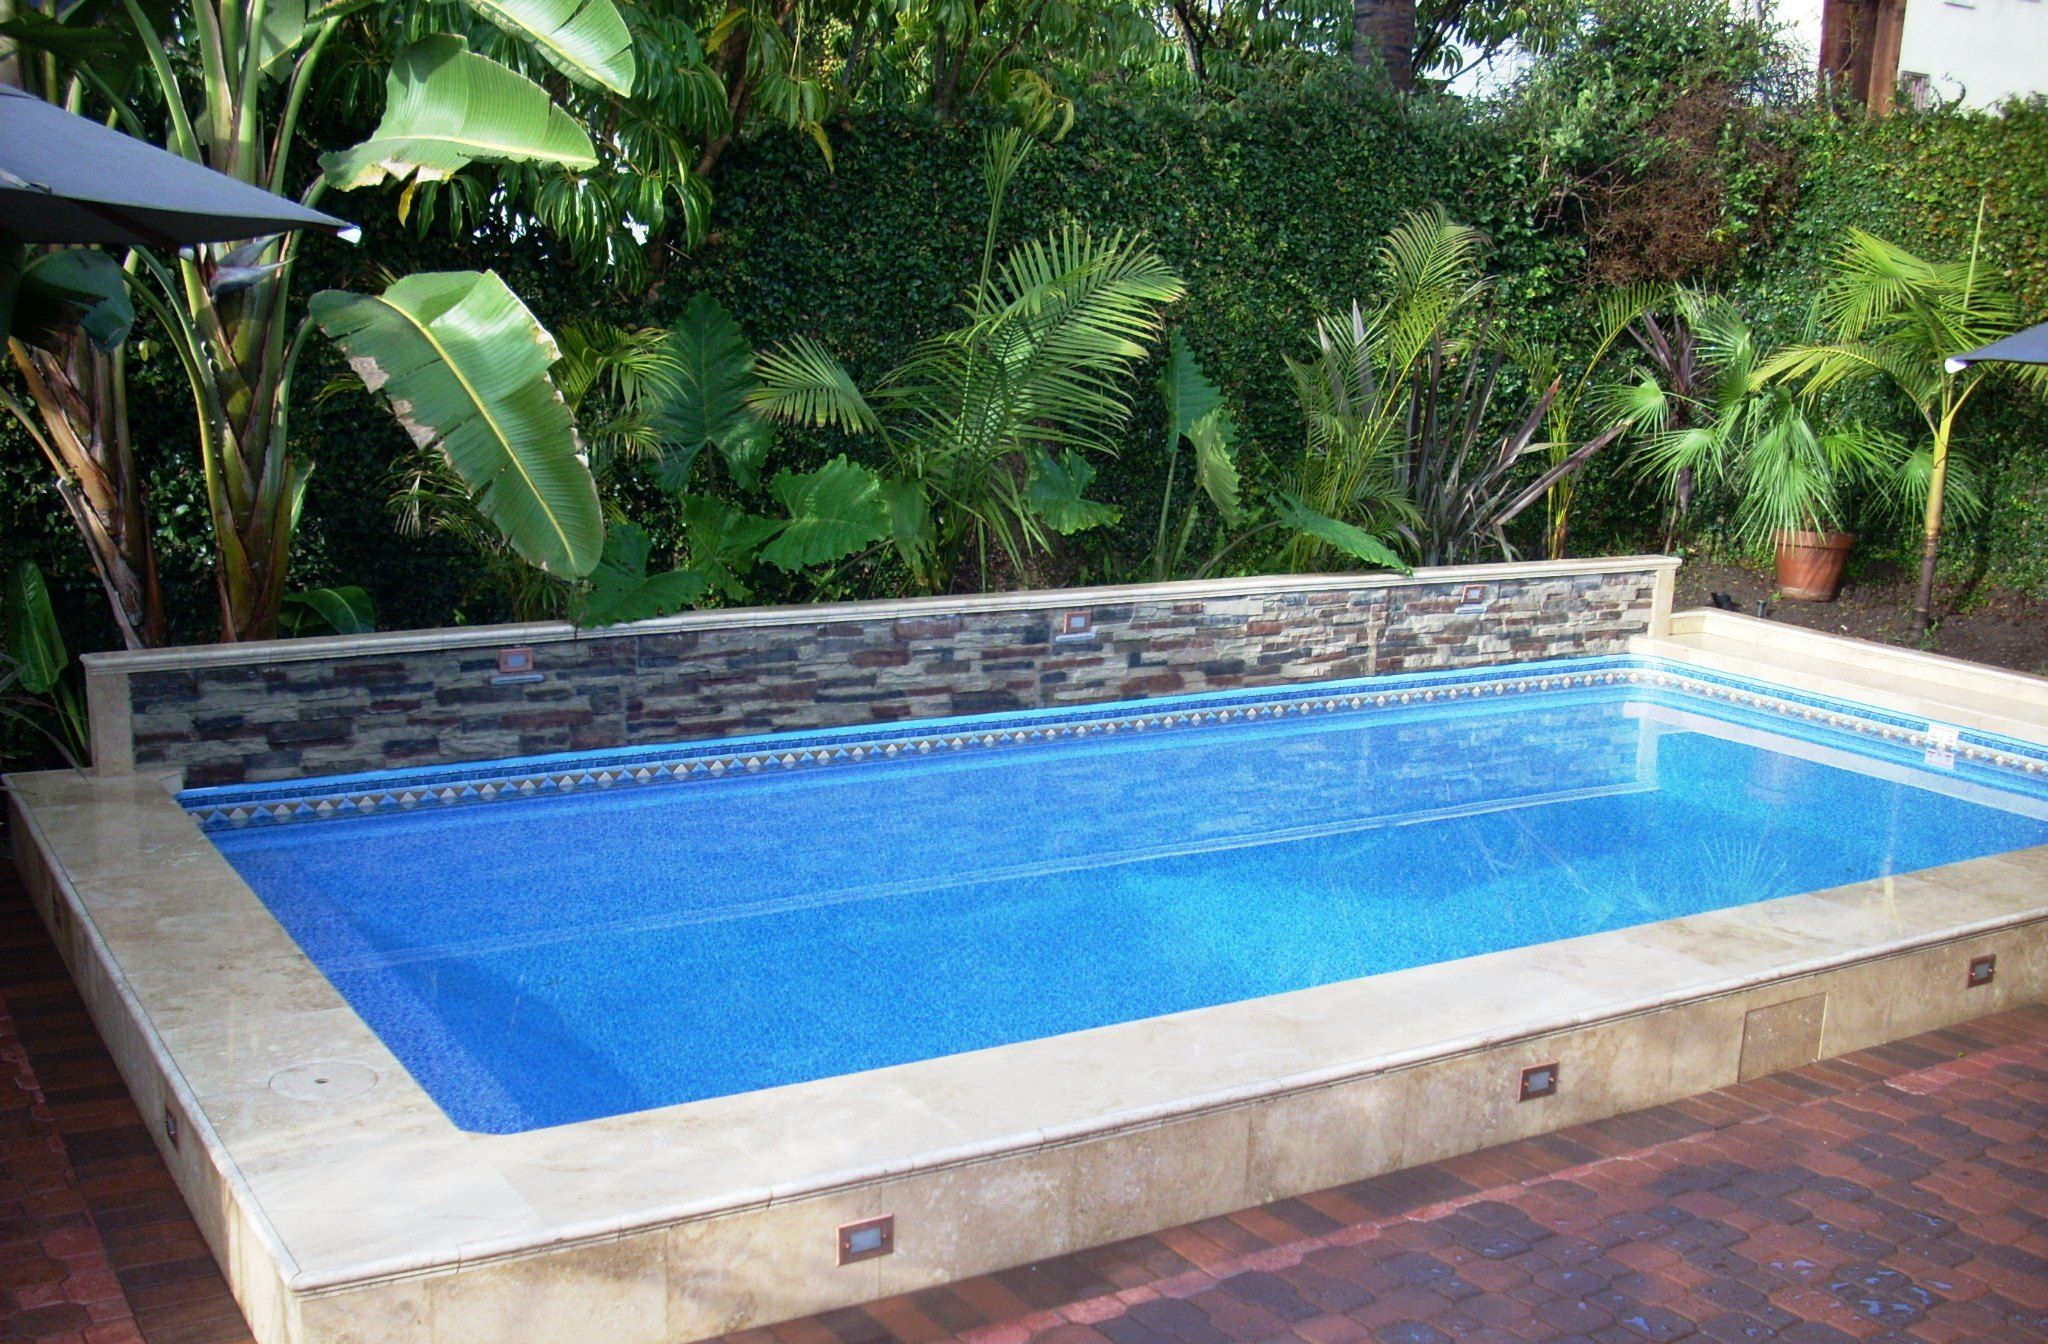 This Islander Pool Is 14 X 28 With A Raised Back Ledger Stone Wall And Lower Travertine Tile Finish The Vinyl Lined Basic